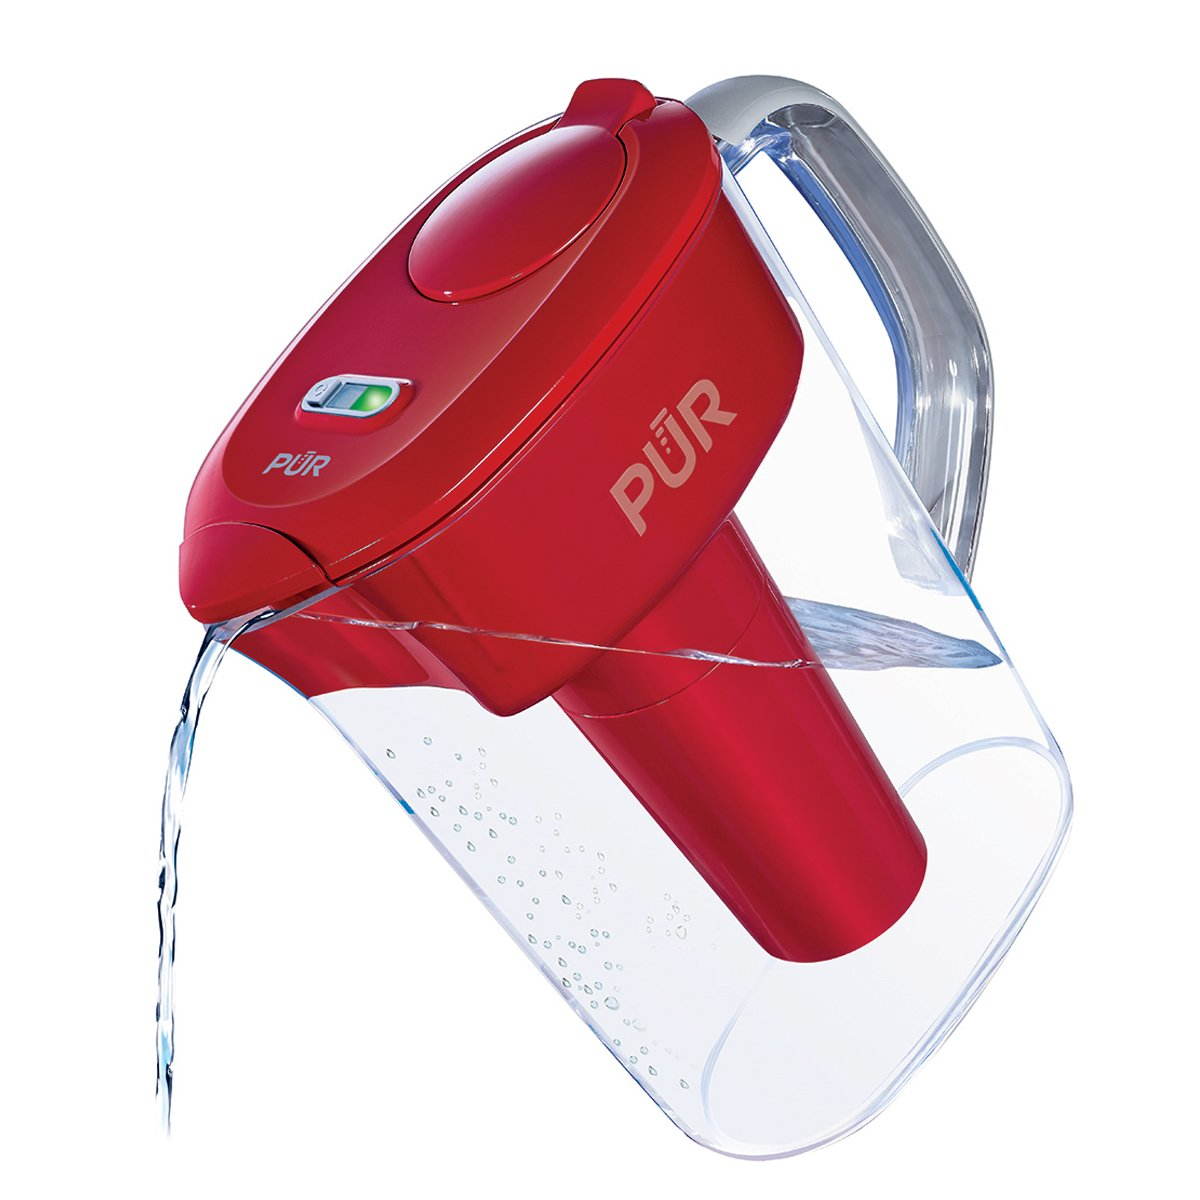 PUR 7 Cup Ultimate Water Filtration Pitcher with LED & Lead Reduction Filter, Red PPT711R